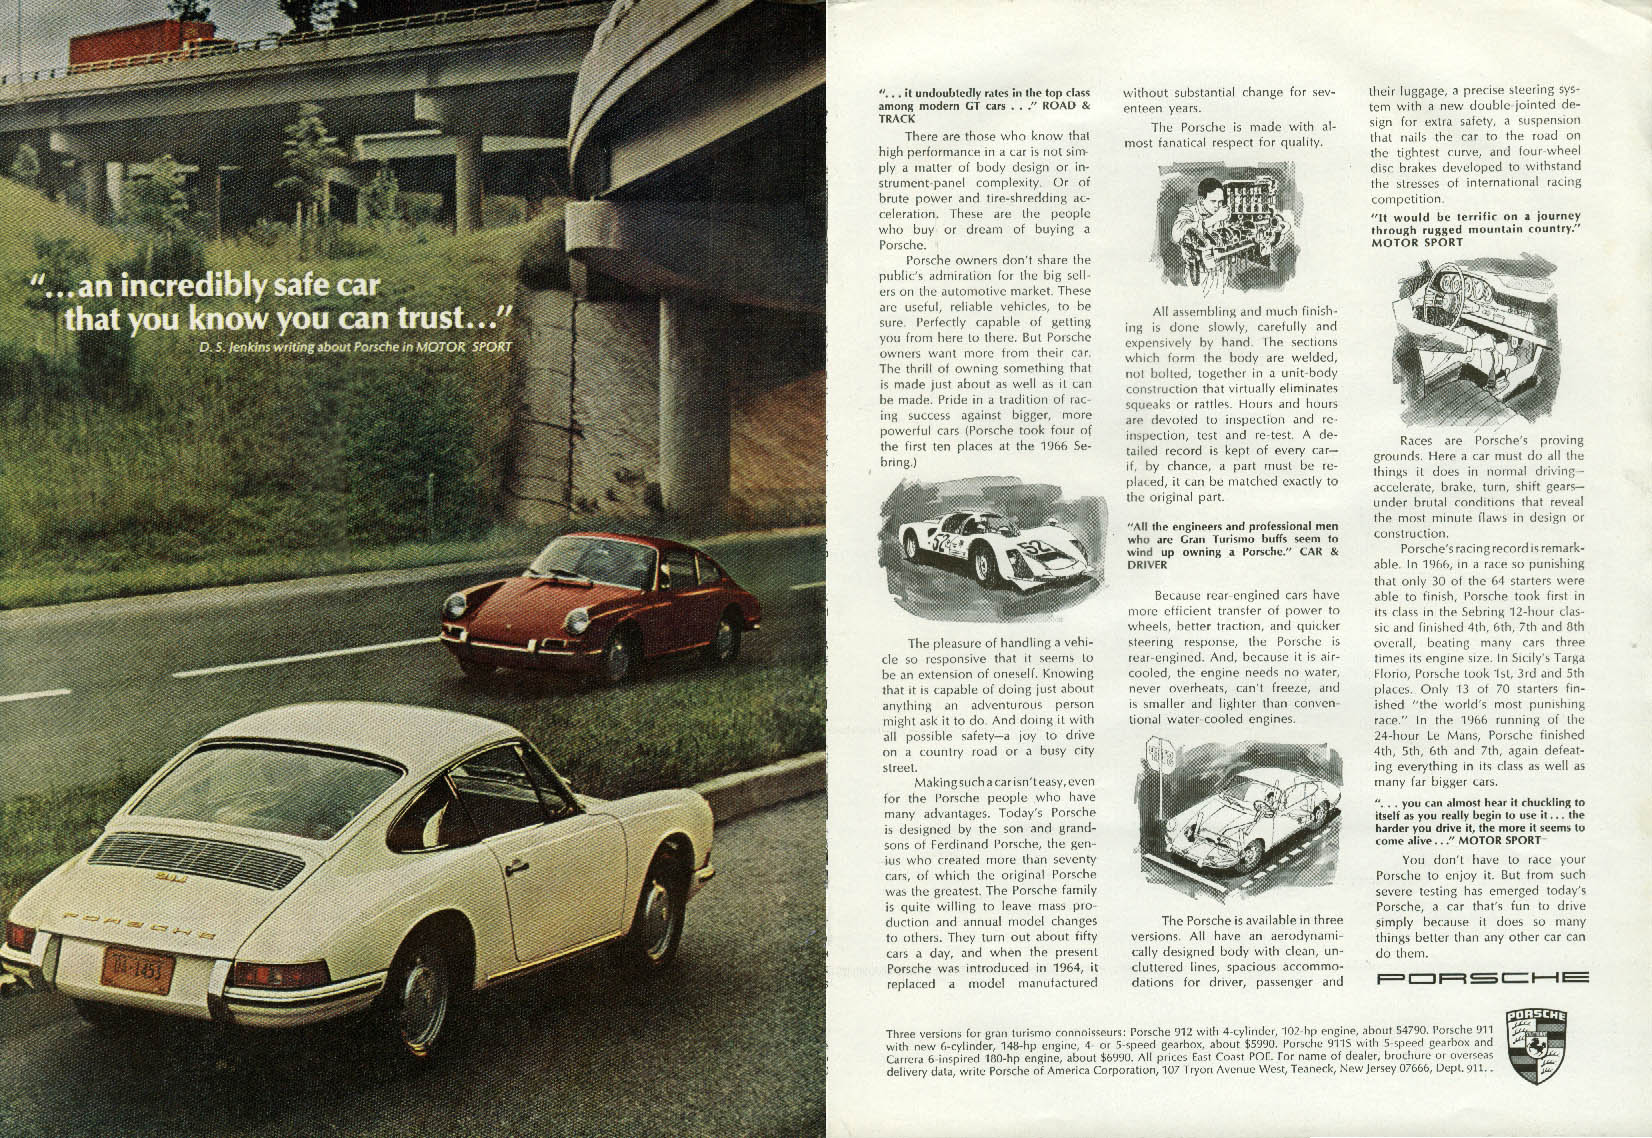 An incredibly safe car that you can trust Porsche 911 ad 1967 NY